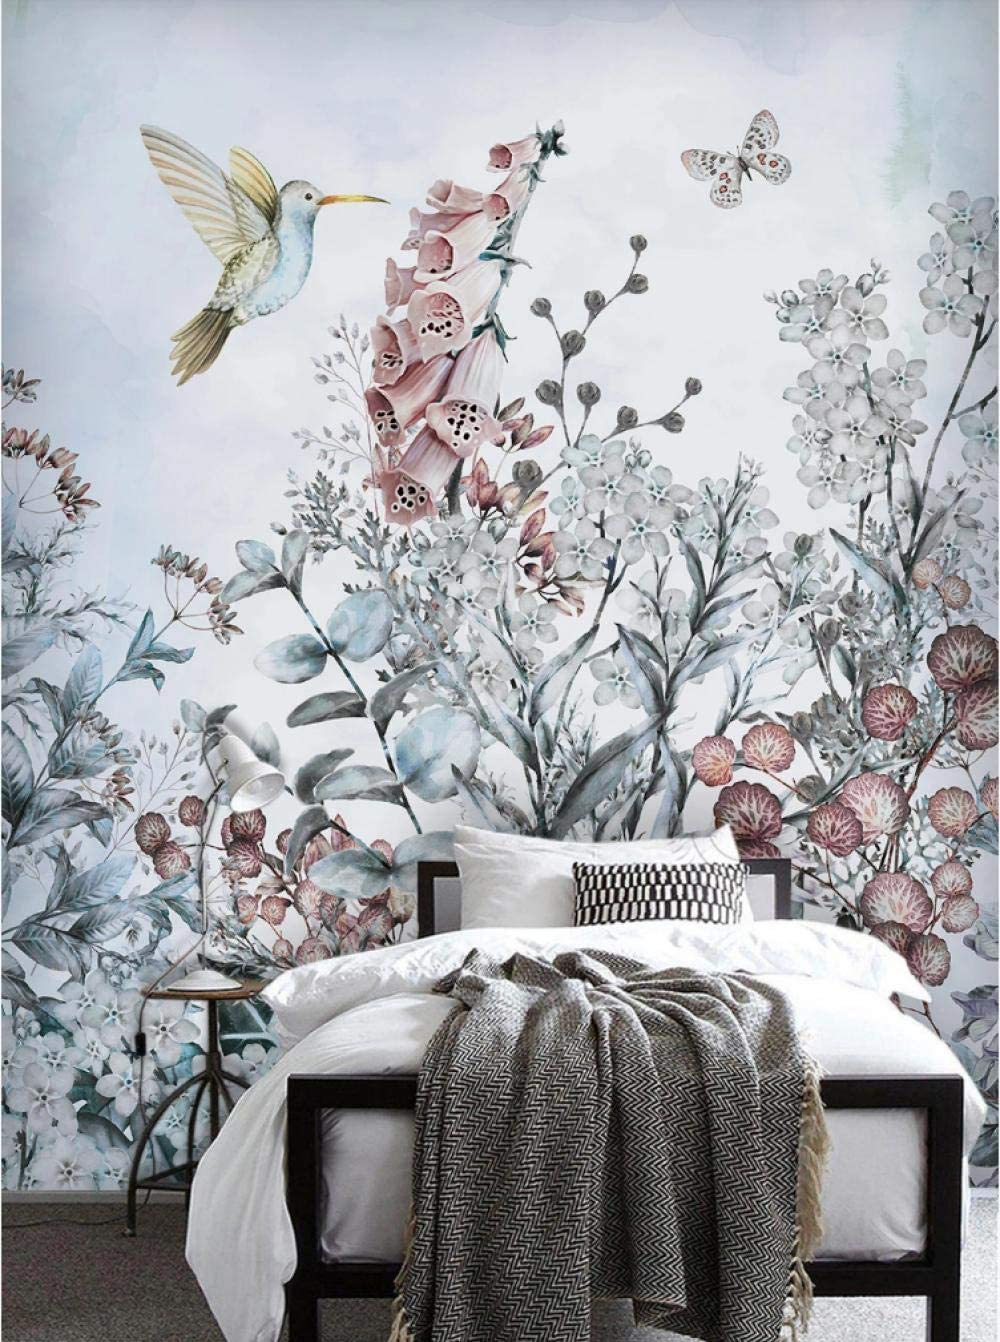 amazon com custom 3d wallpaper photo mural wall tropical plant flower bird butterfly living room tv background wall murals decorative wallpapers home decor 200x140cm lxh l kitchen dining custom 3d wallpaper photo mural wall tropical plant flower bird butterfly living room tv background wall murals decorative wallpapers home decor